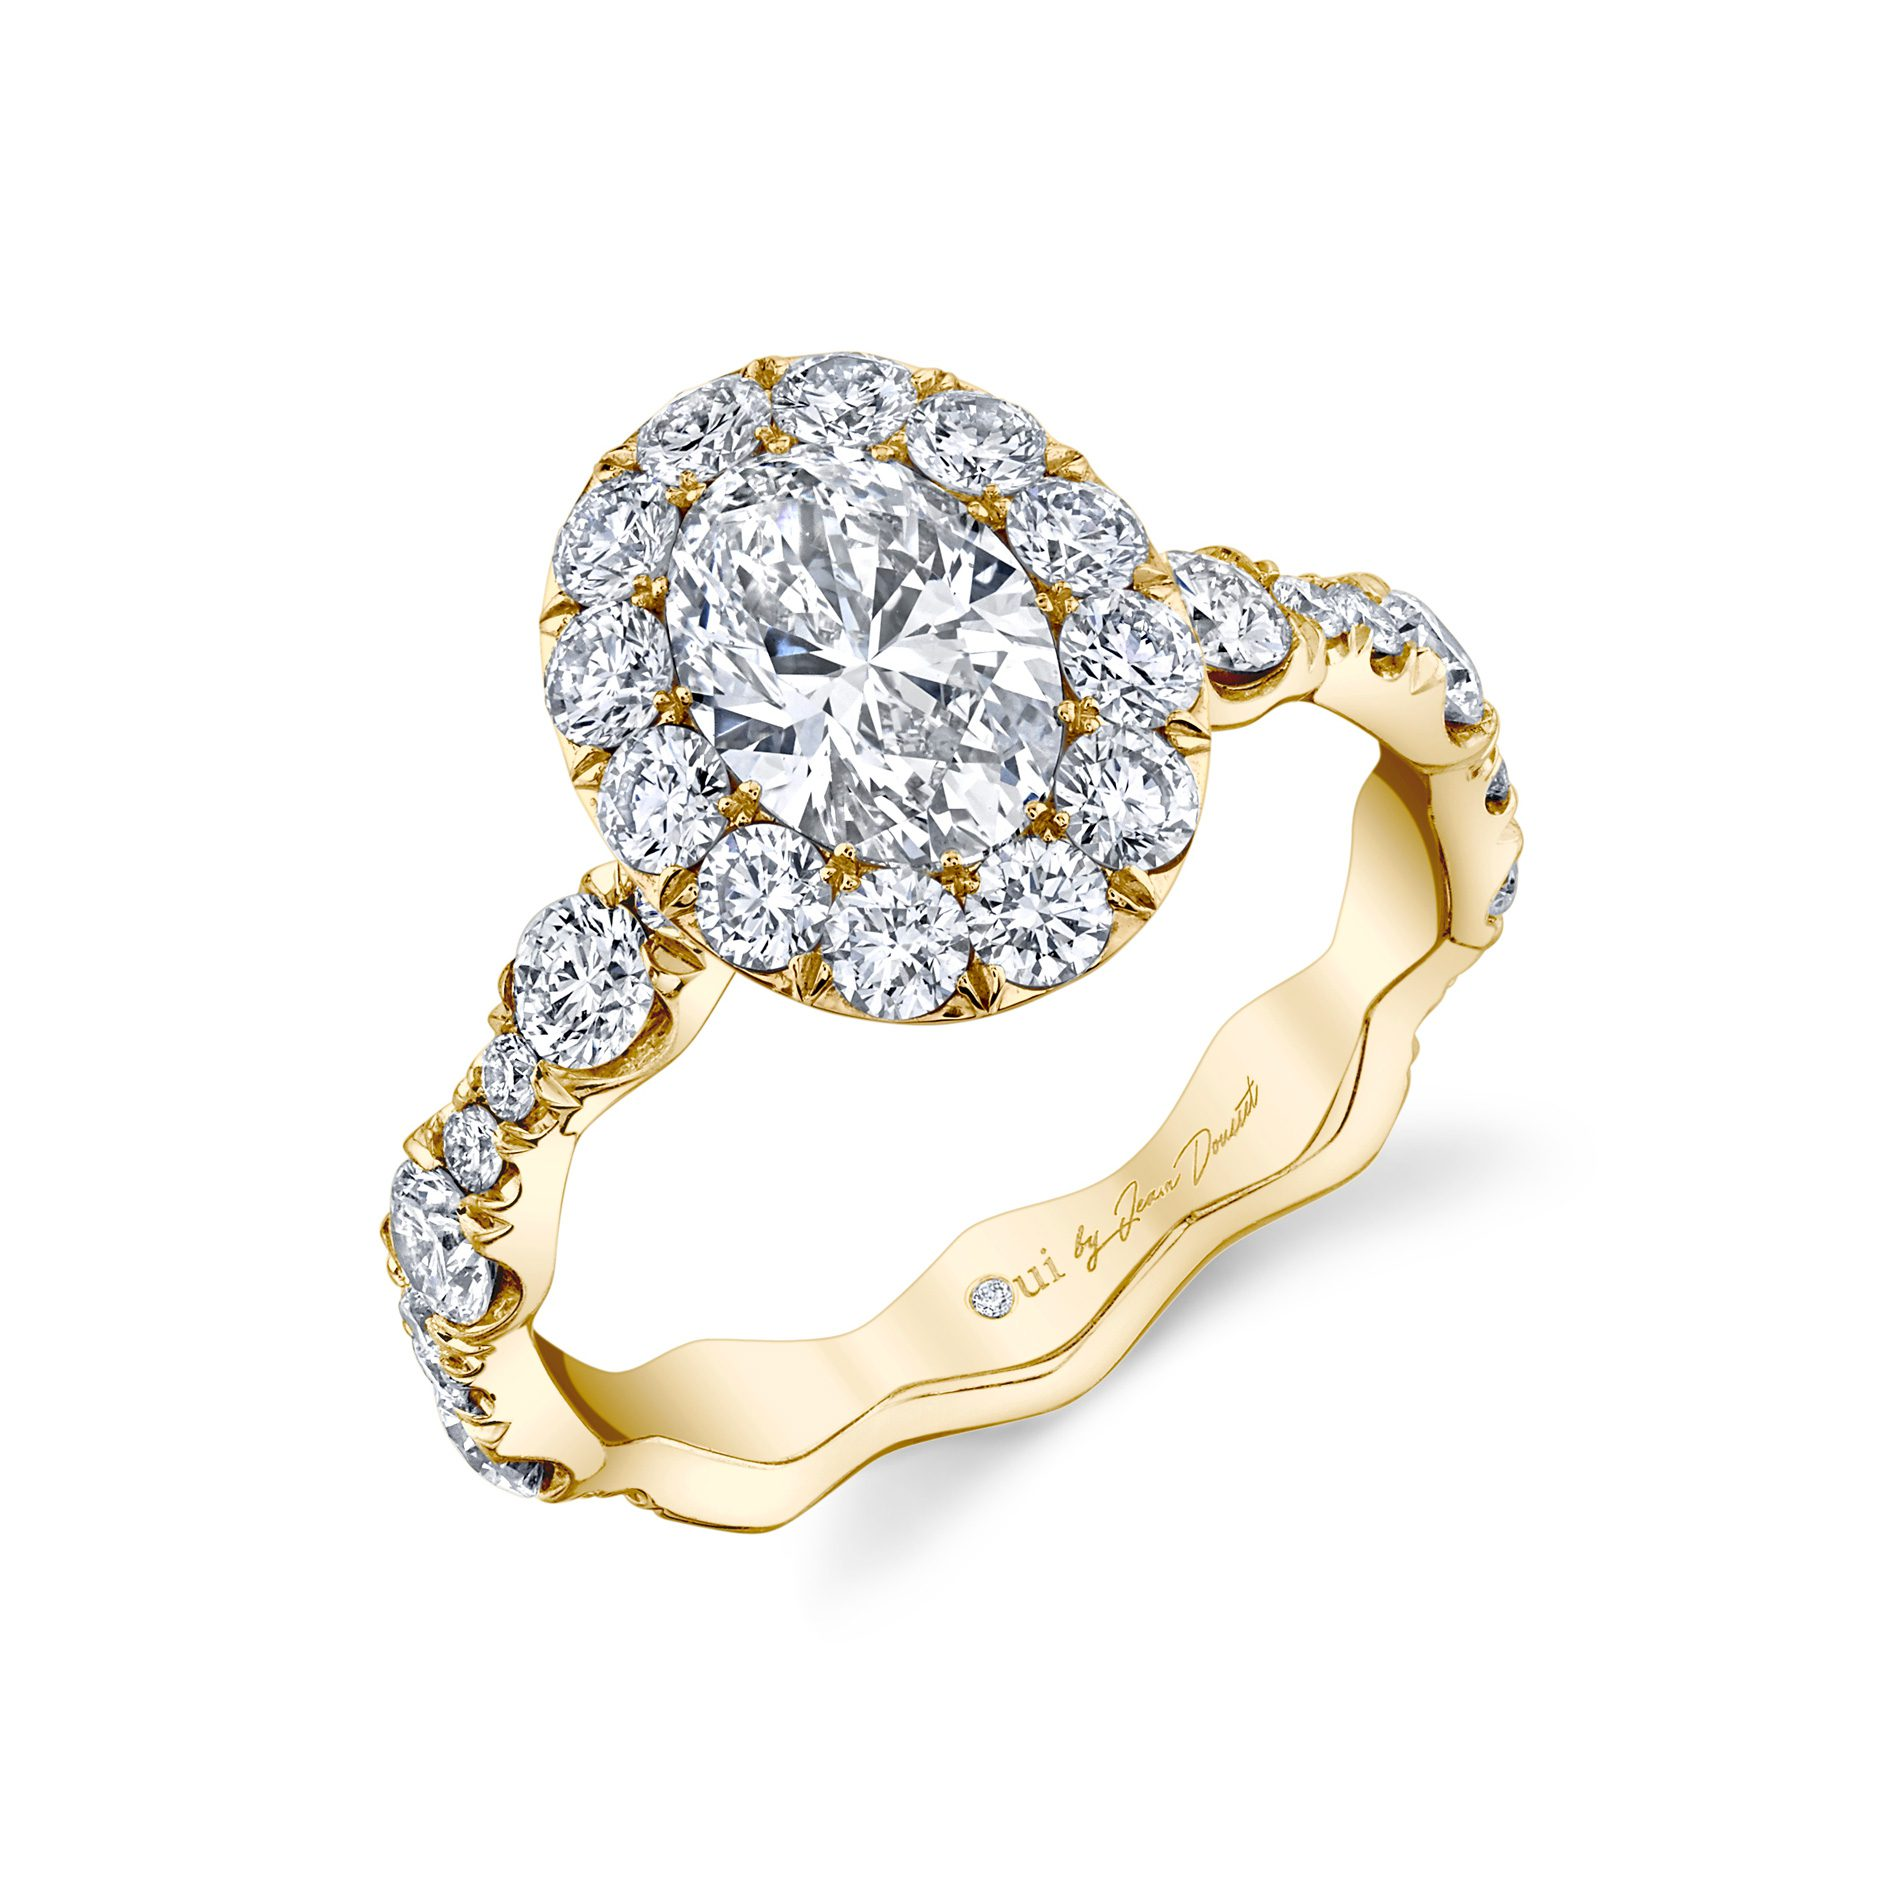 Yvonne Floating Oval Seamless Solitaire® Engagement Ring with a diamond pavé wave in 18k Yellow Gold Profile View by Oui by Jean Dousset